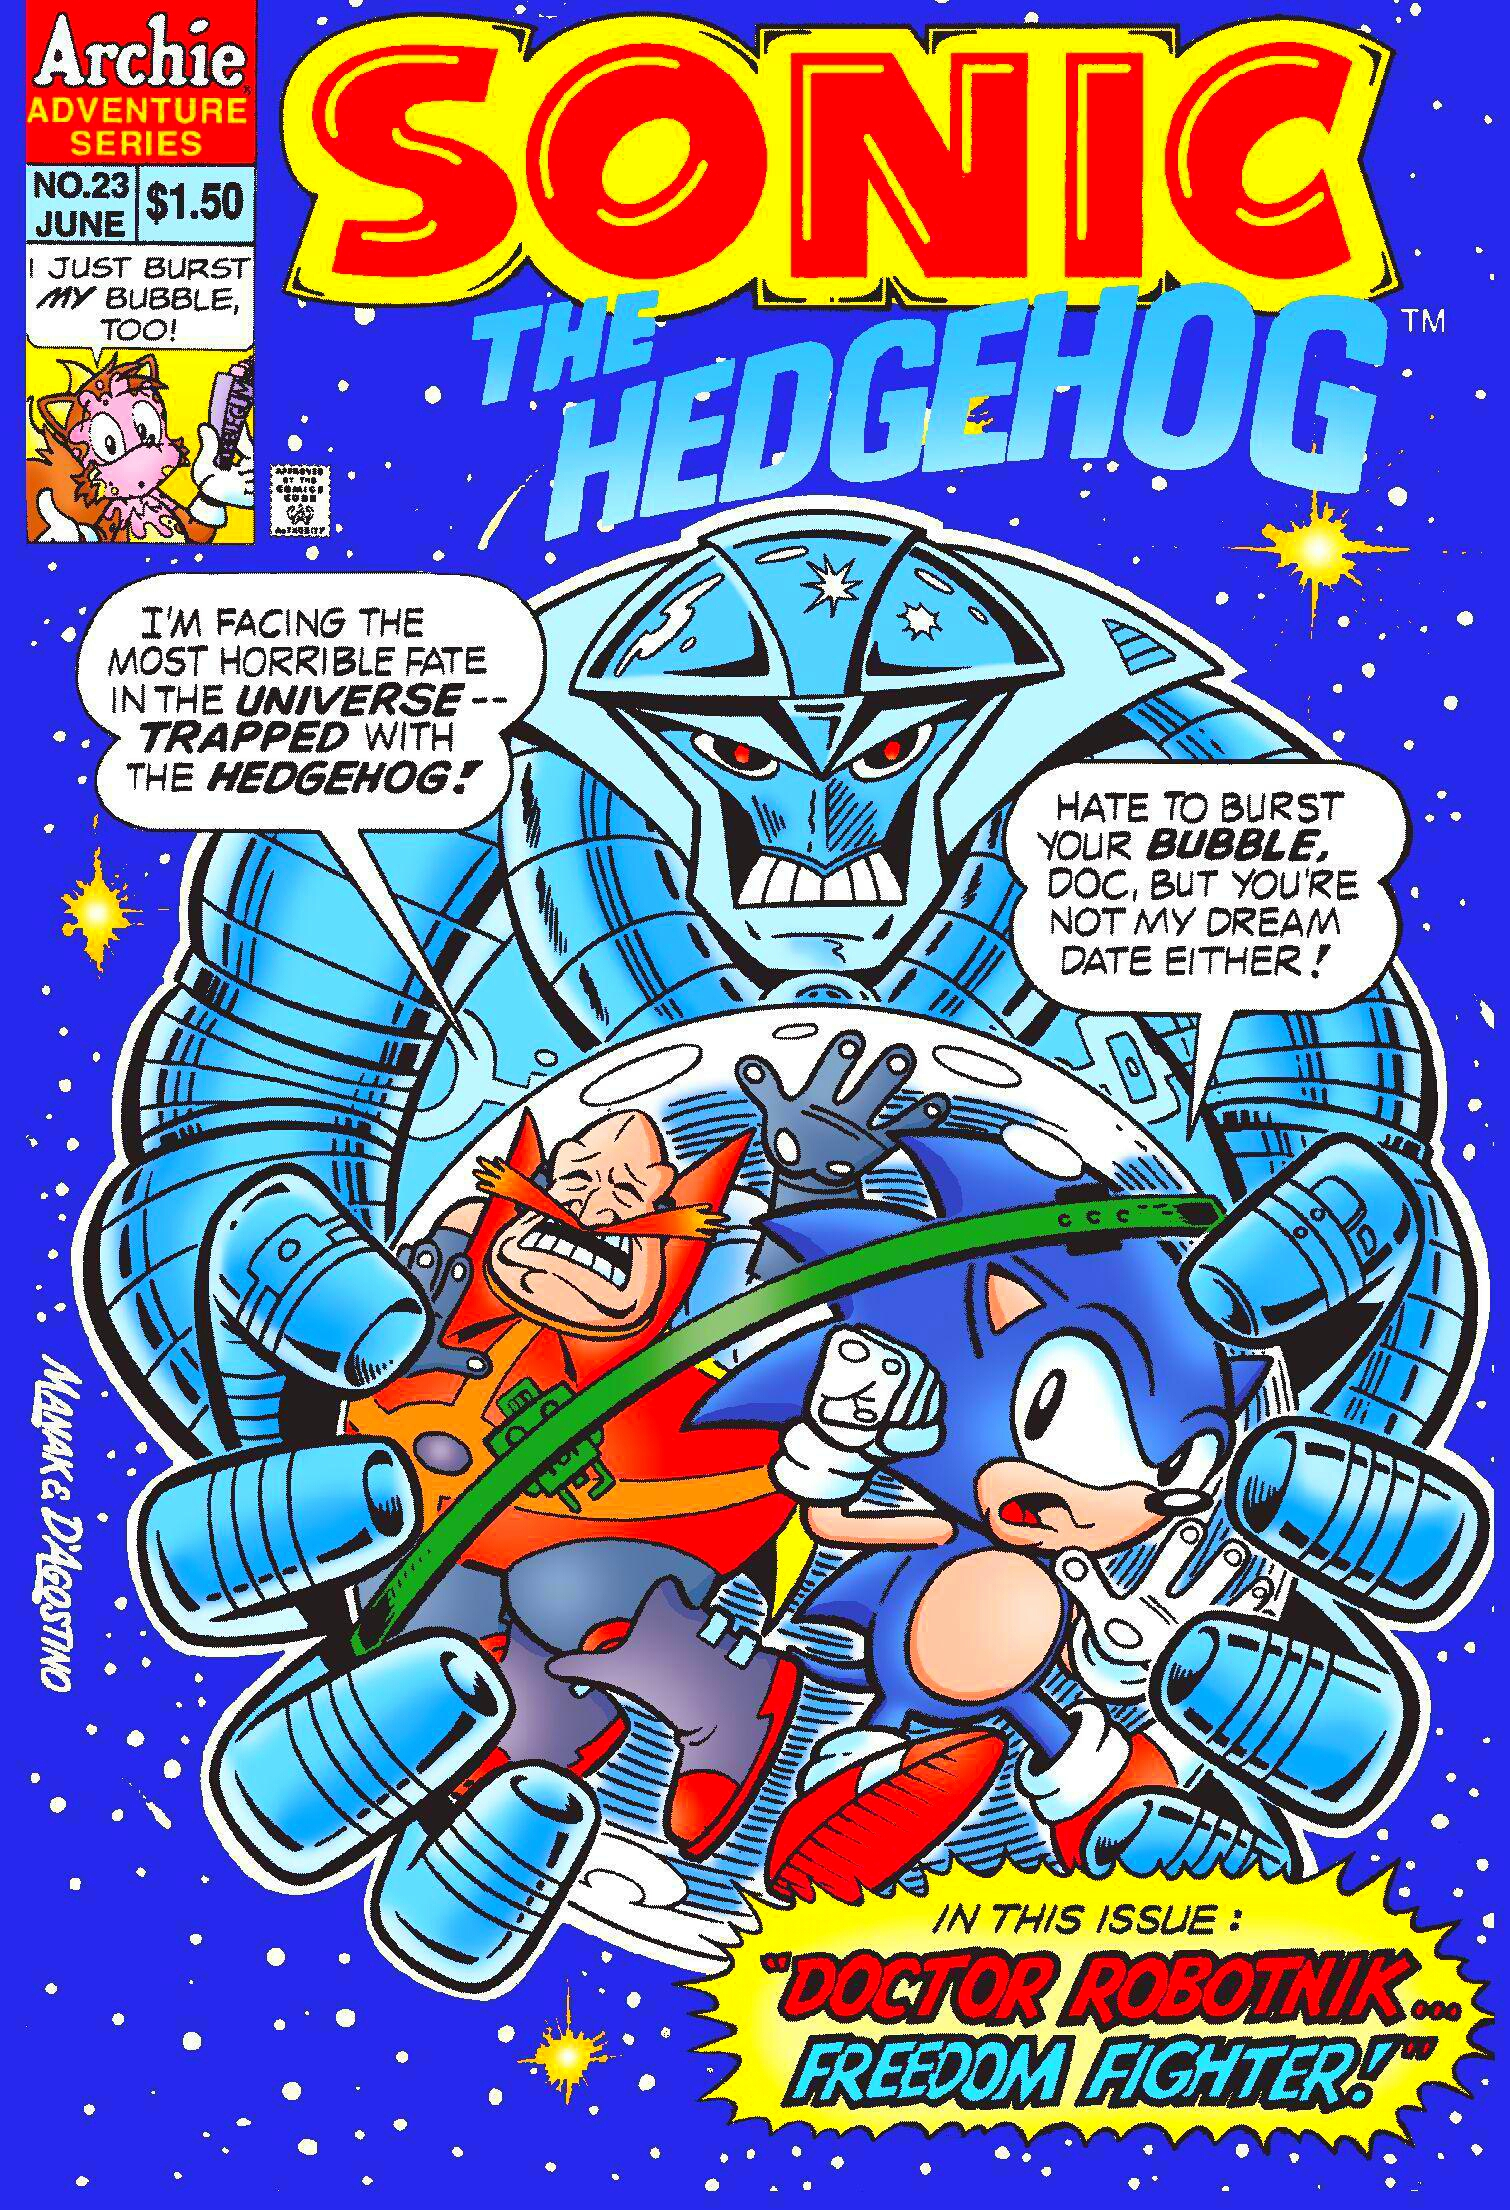 Archie Sonic the Hedgehog Issue 23